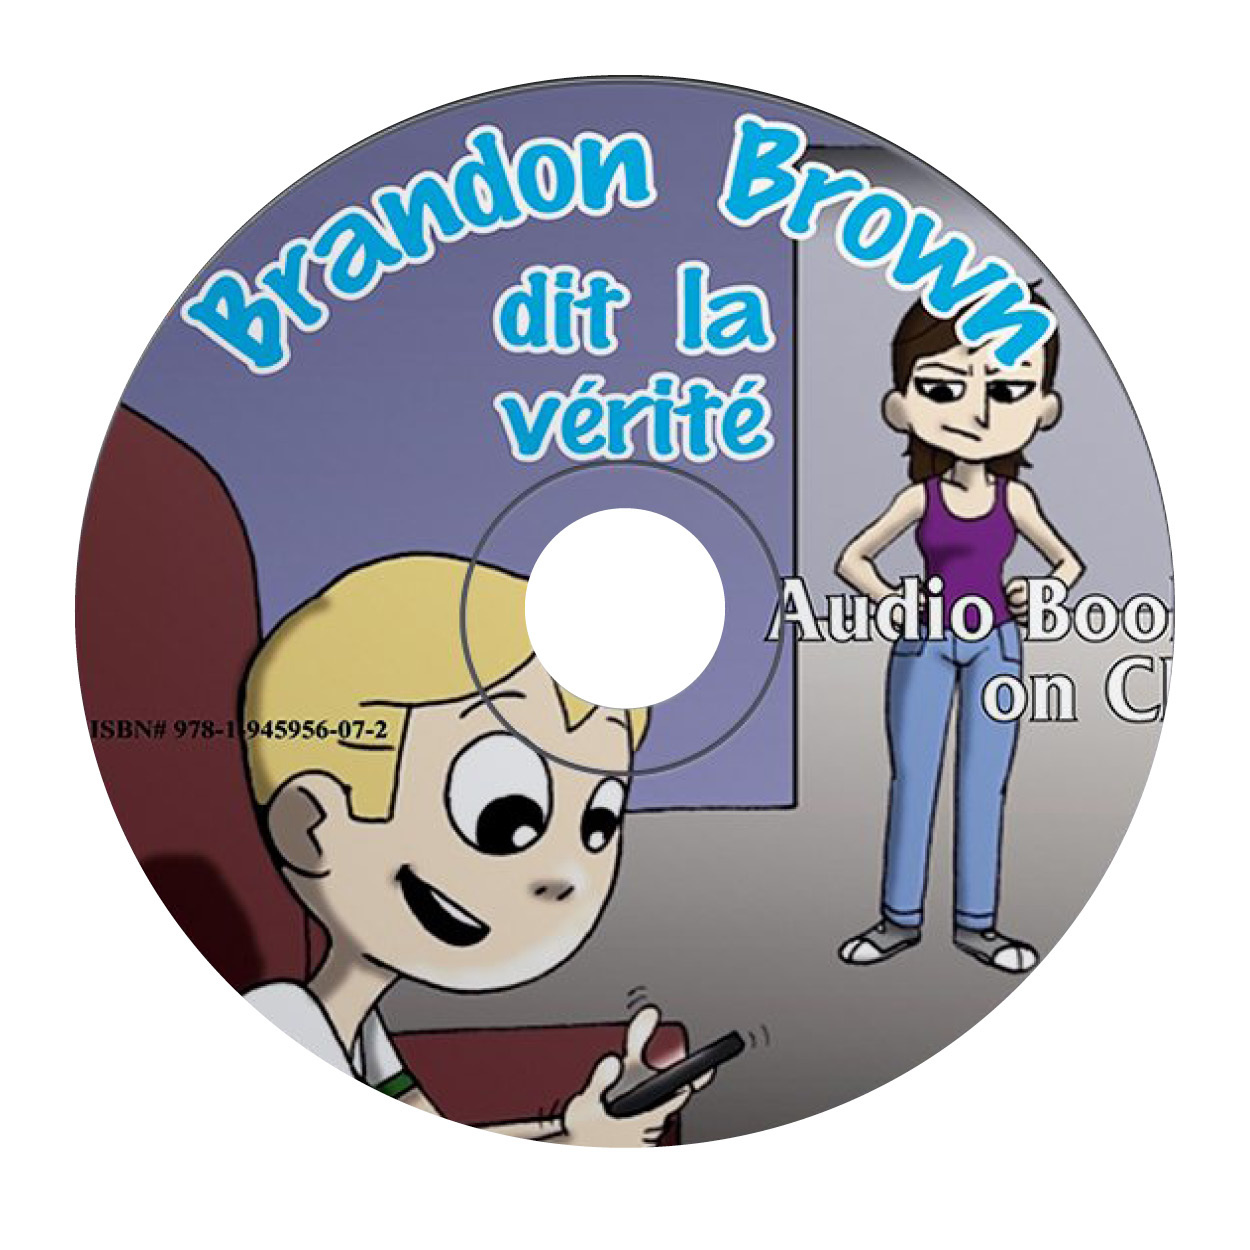 Brandon Brown dit la vérité - Audiobook